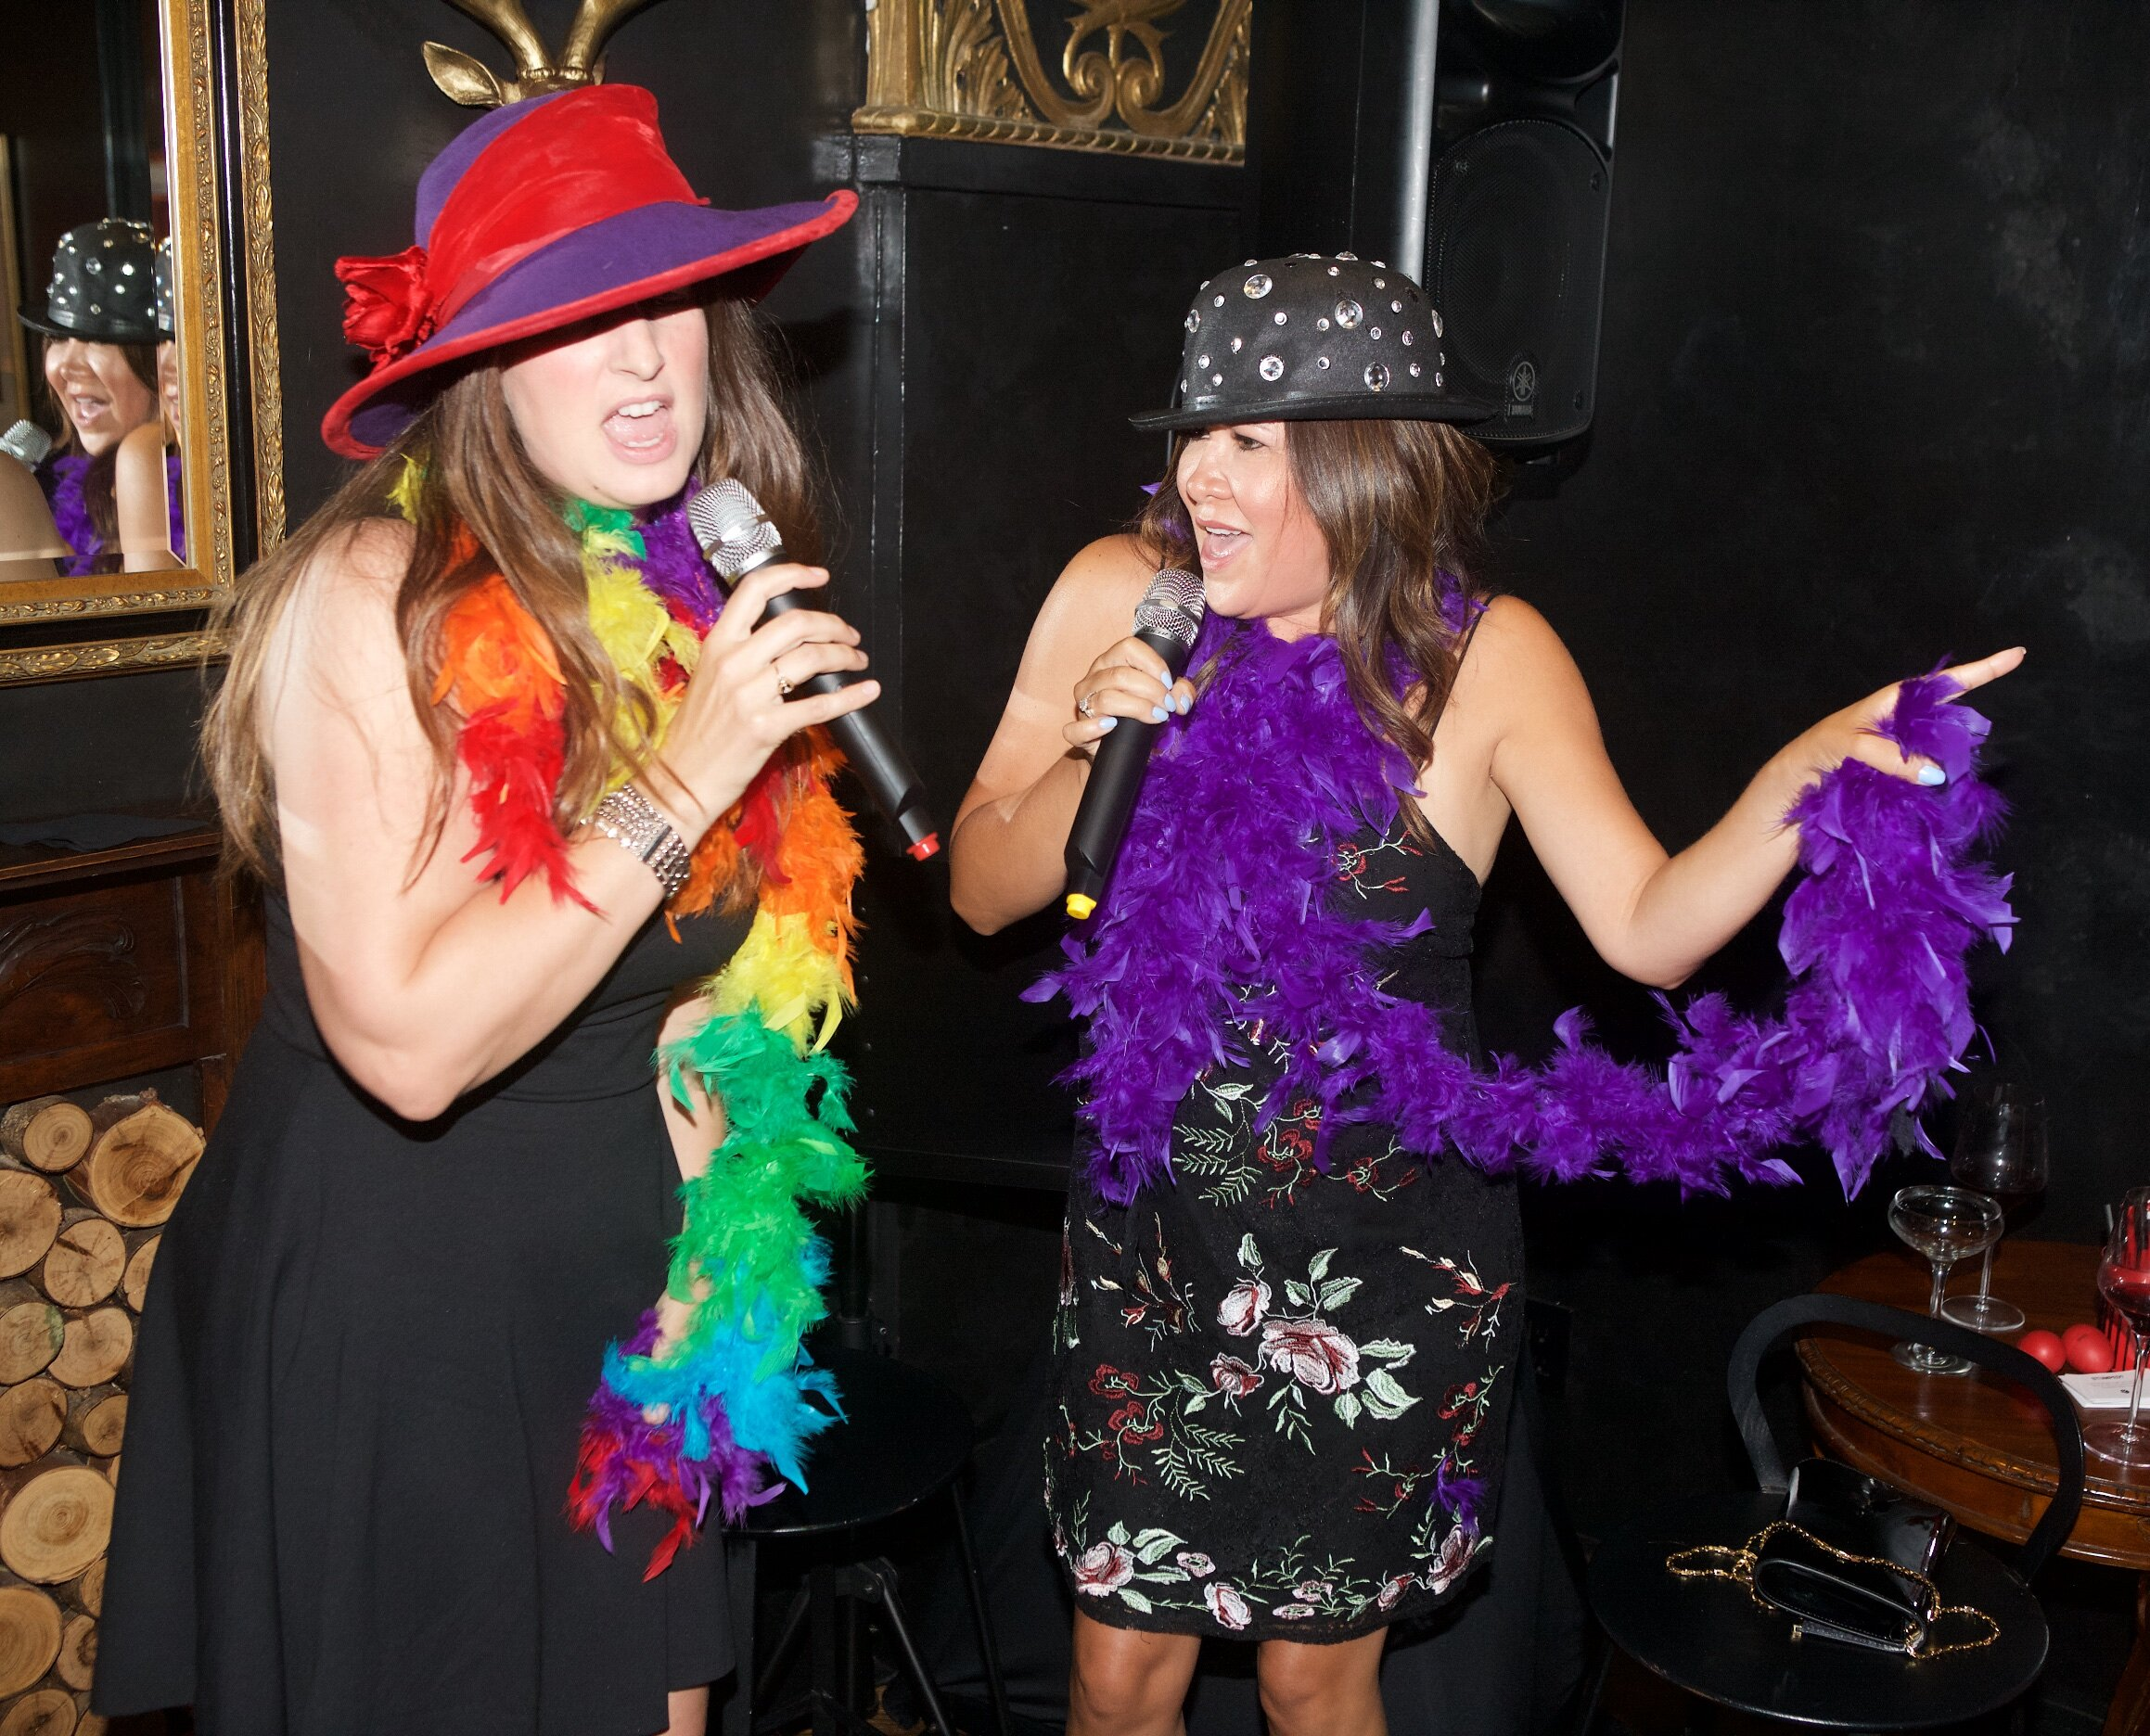 PARTY PACKAGES - Ready to take your BIRTHDAY PARTY to the next level? OR, looking for something fun and fabulous to do at the OFFICE.We host EVERYTHING from KIDS PARTIES to CORPORATE EVENTS.